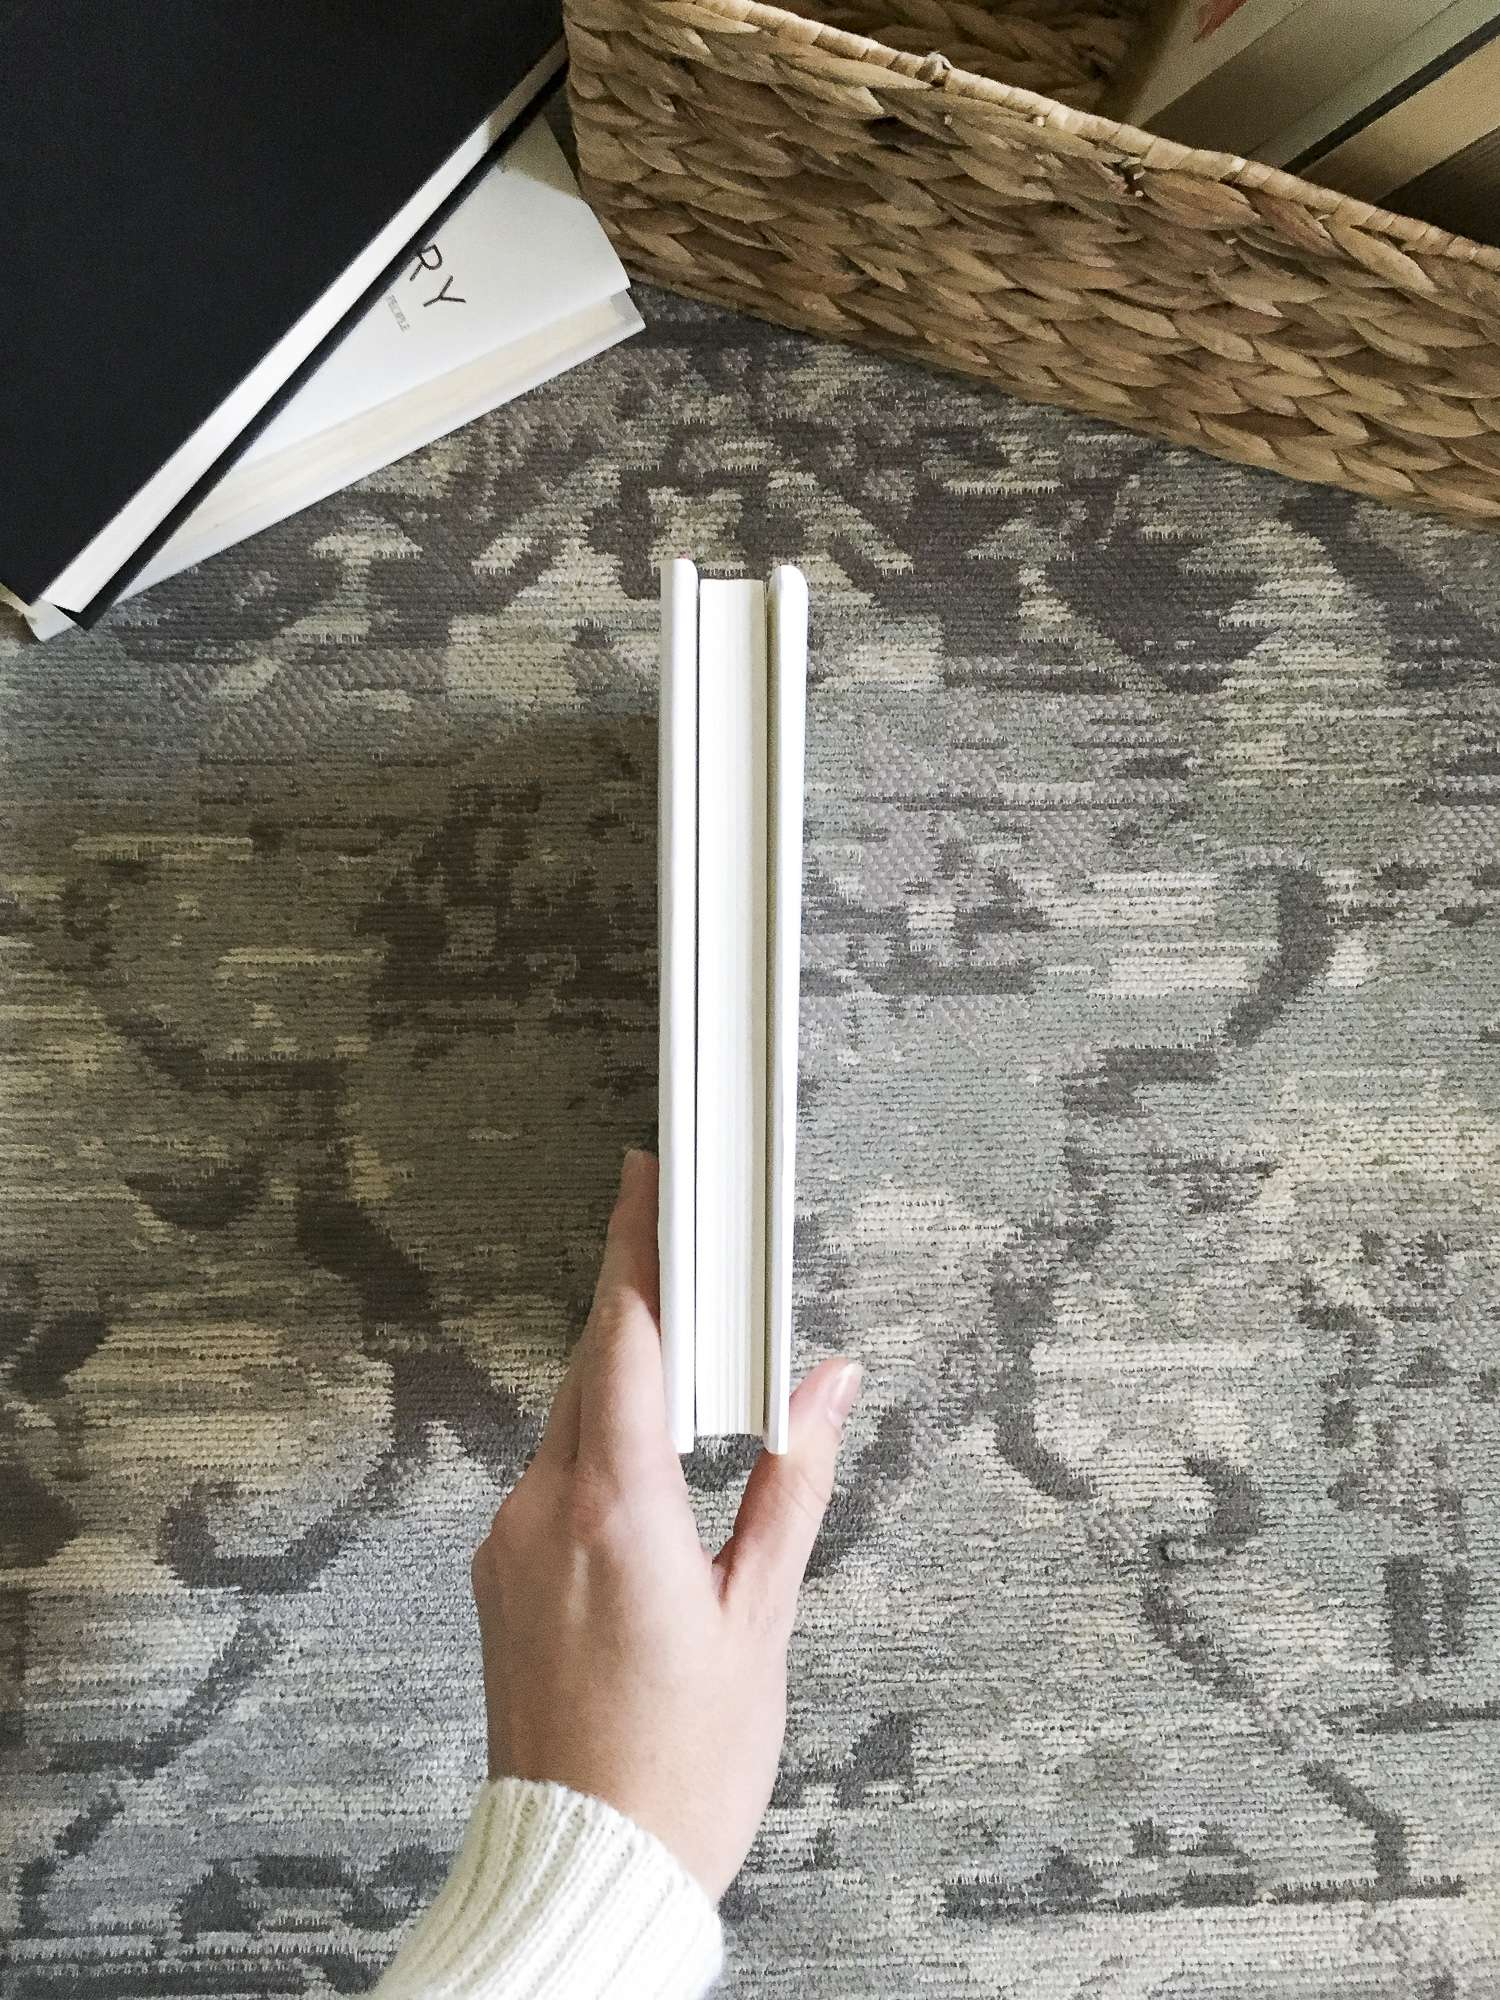 Do you want to make your book shelves look cohesive? I've got the simplest and easiest DIY book covers you've ever done up on the blog for you today.